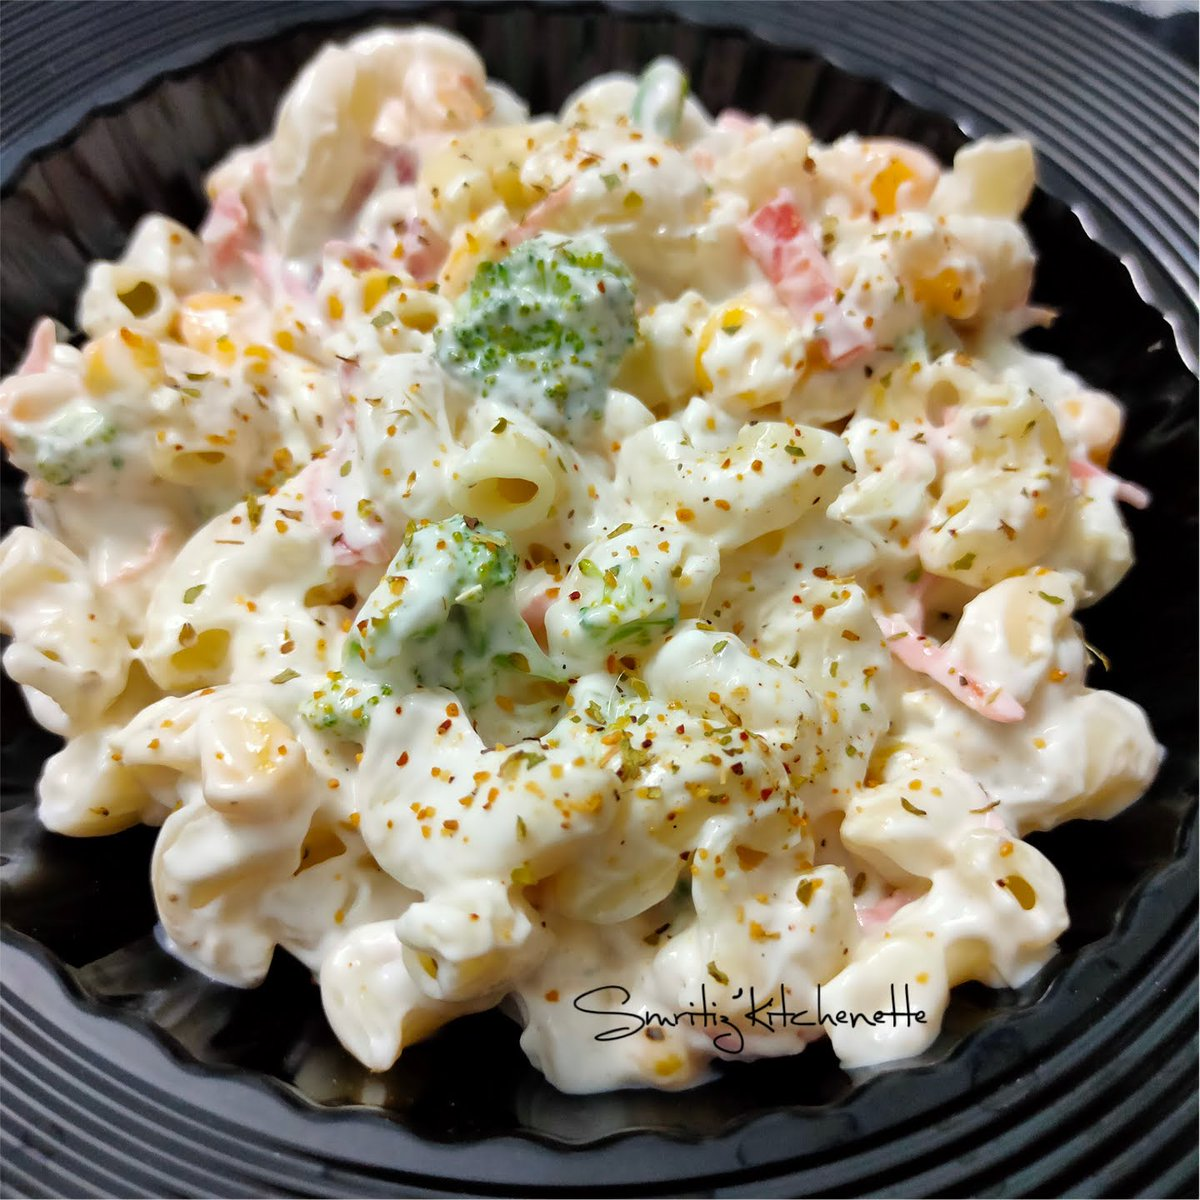 Wheat Macaroni Salad is an healthy and tasty option for your meal with fresh fruits and veggies, #fridayvibes #FridayFeeling #fridaymood #wholewheatpasta #elbowmacaroni #pastarecipe #pastasalad #salad #saladdressingrecipe #whitesaucepasta #veggies Recipe: